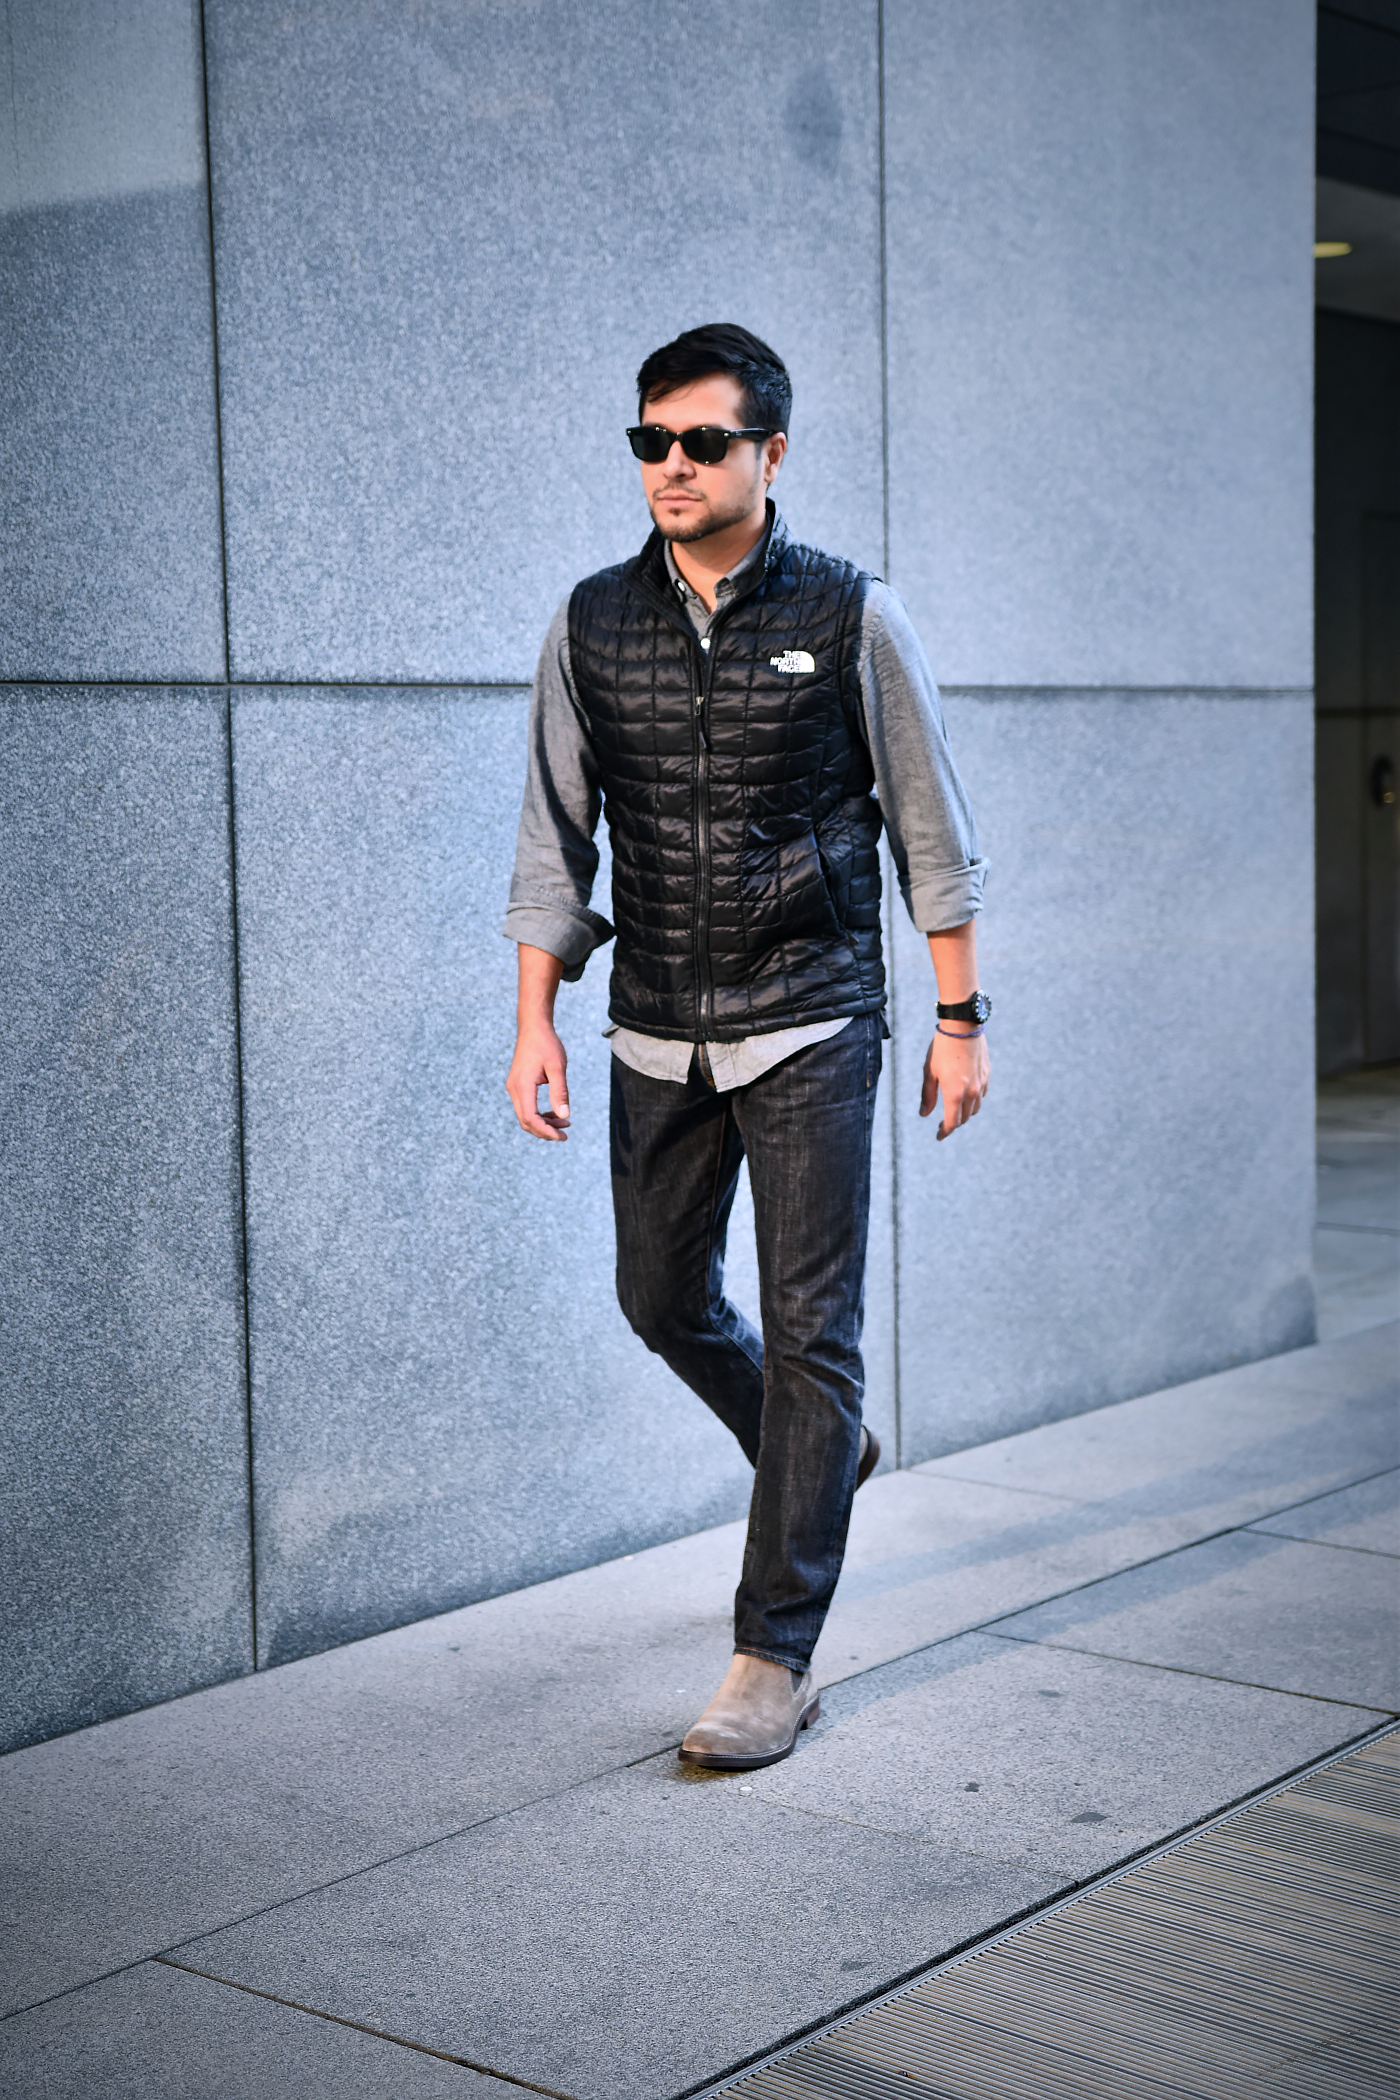 MEN'S STYLE WITH NORDSTROM